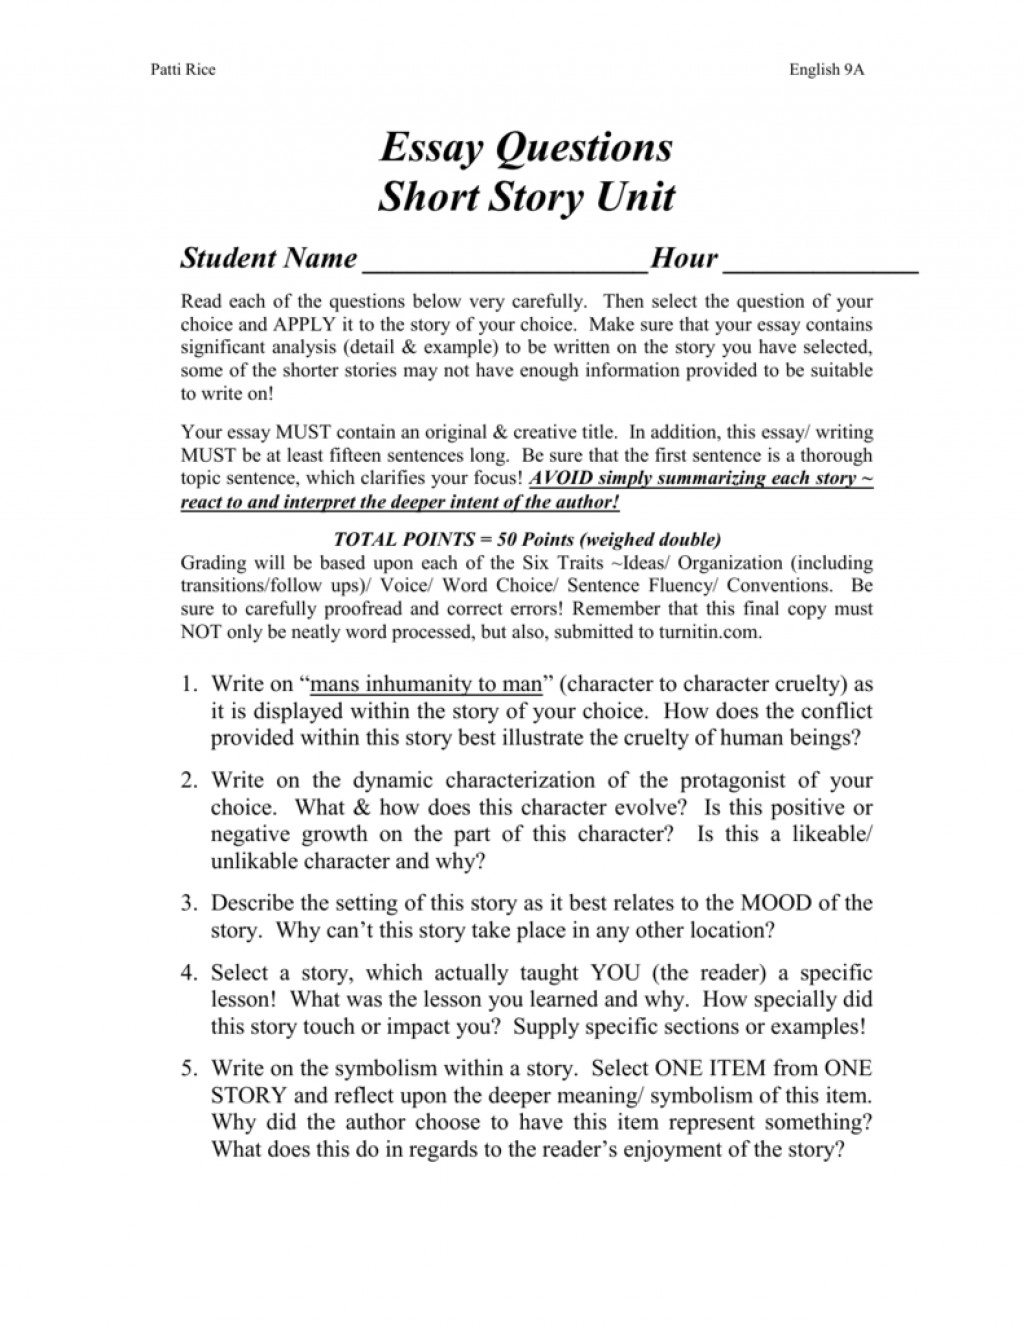 001 Essay Example Short Story 008001643 1 Incredible Writing Contests Questions Outline Large